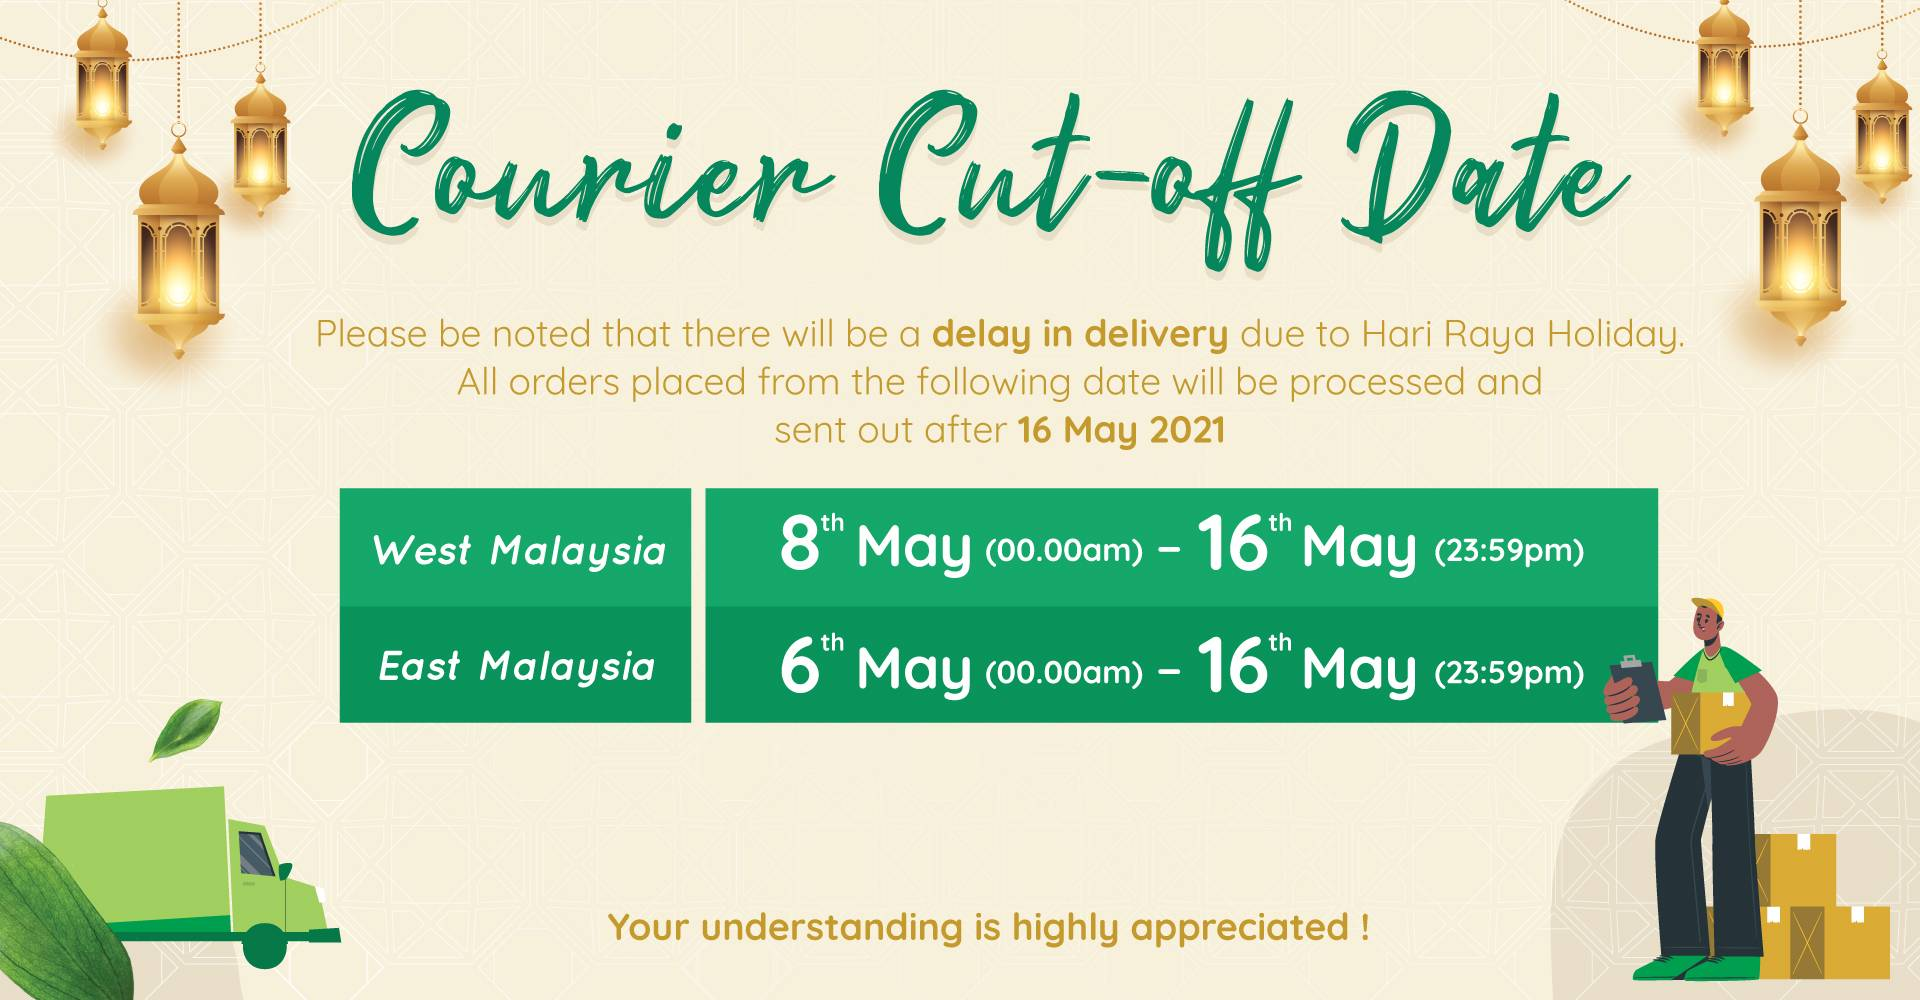 Courier Cut-off Date for Raya